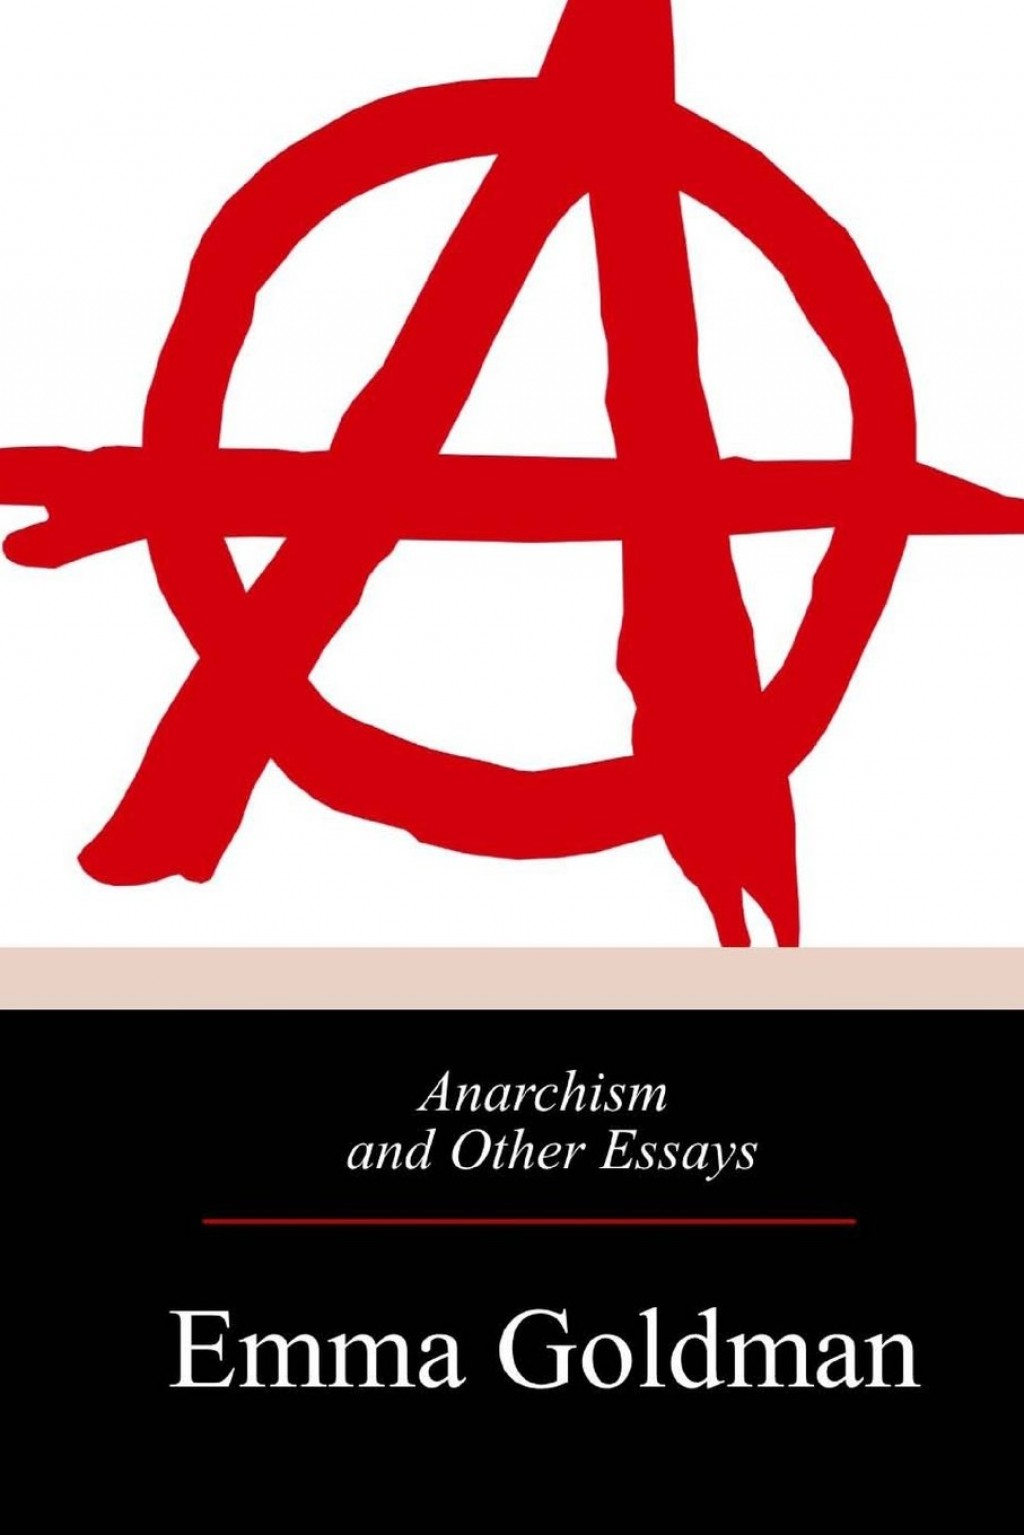 008 610zkhxxiil Essay Example Anarchism And Other Incredible Essays Emma Goldman Summary Mla Citation Large